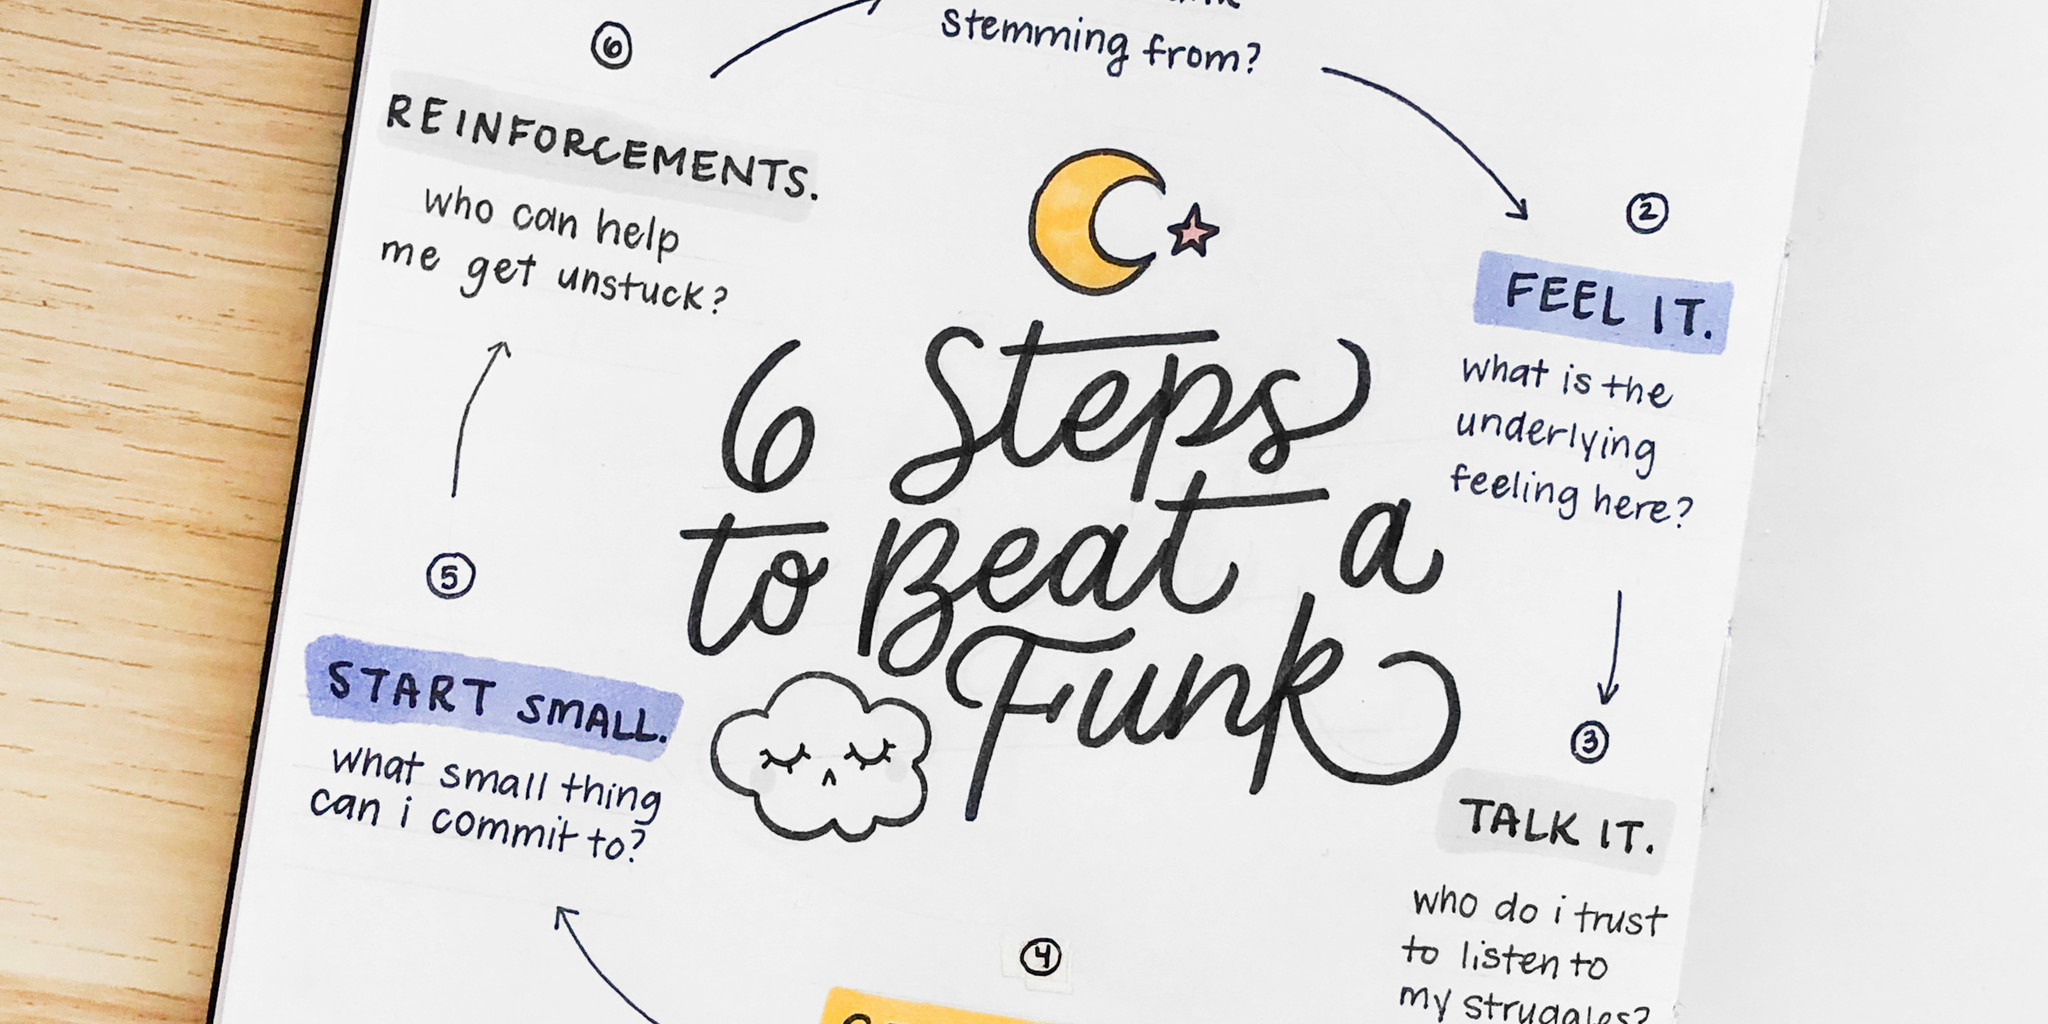 6 Steps to Beat a Funk